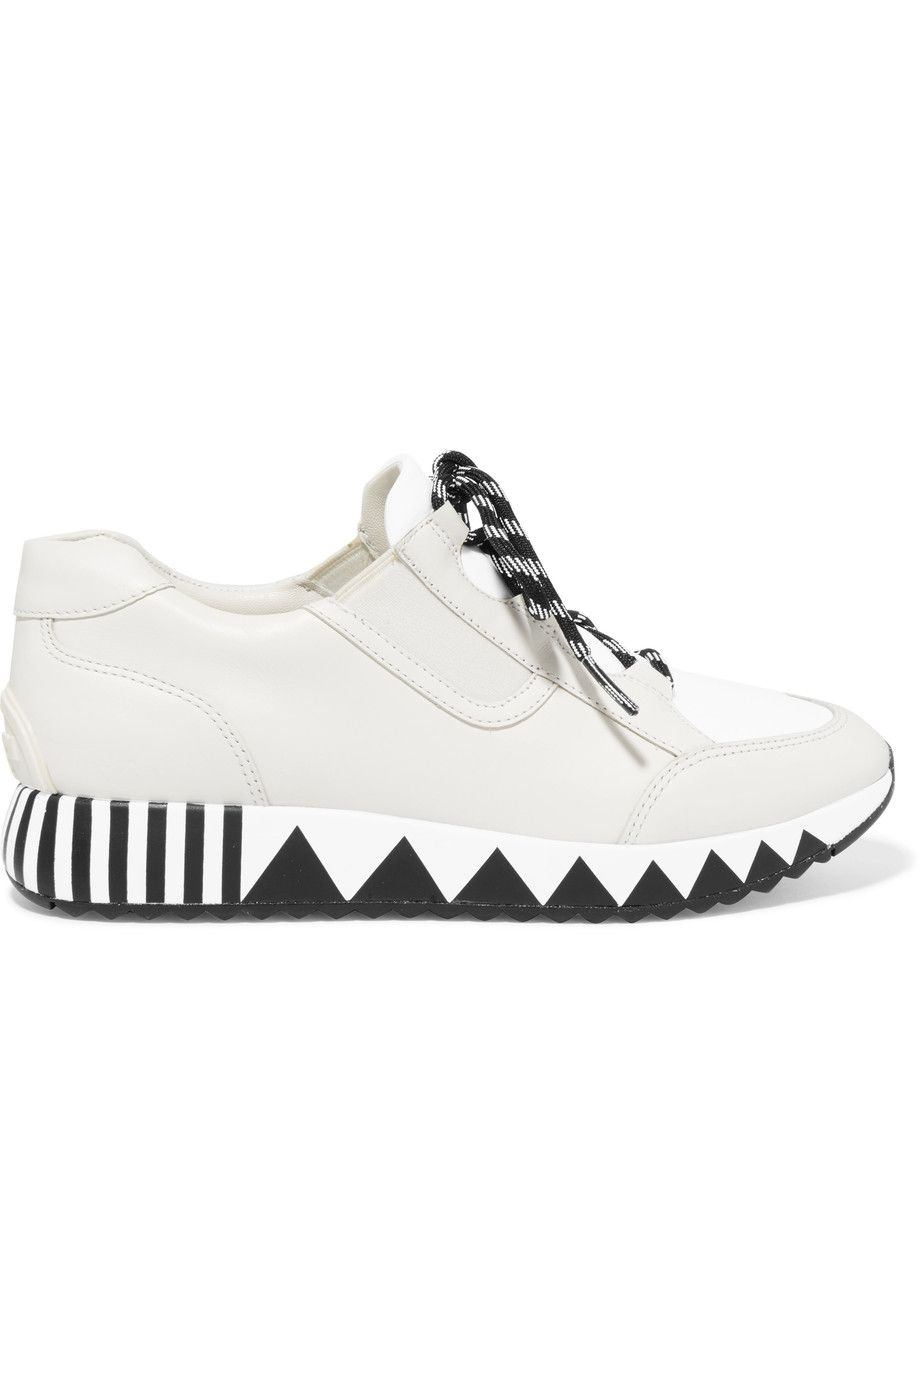 887eac803 TORY BURCH Jupiter leather and neoprene sneakers.  toryburch  shoes   sneakers